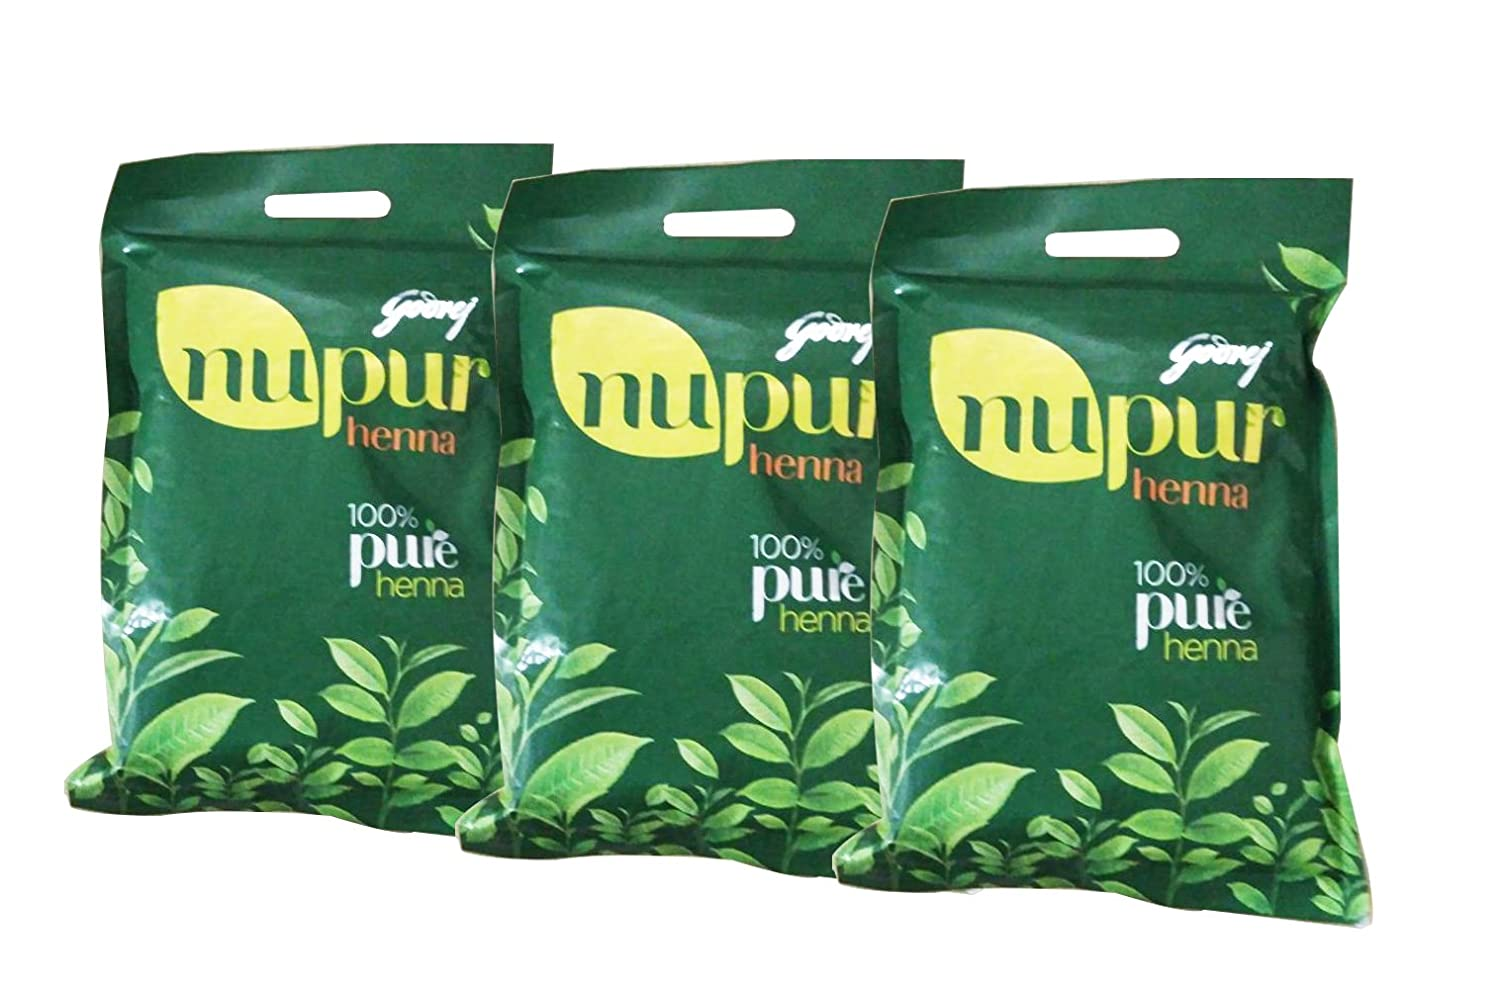 Godrej Nupur Natural Mehndi With Goodness Of 9 Herbs 400 Gm (Pack Of 3)